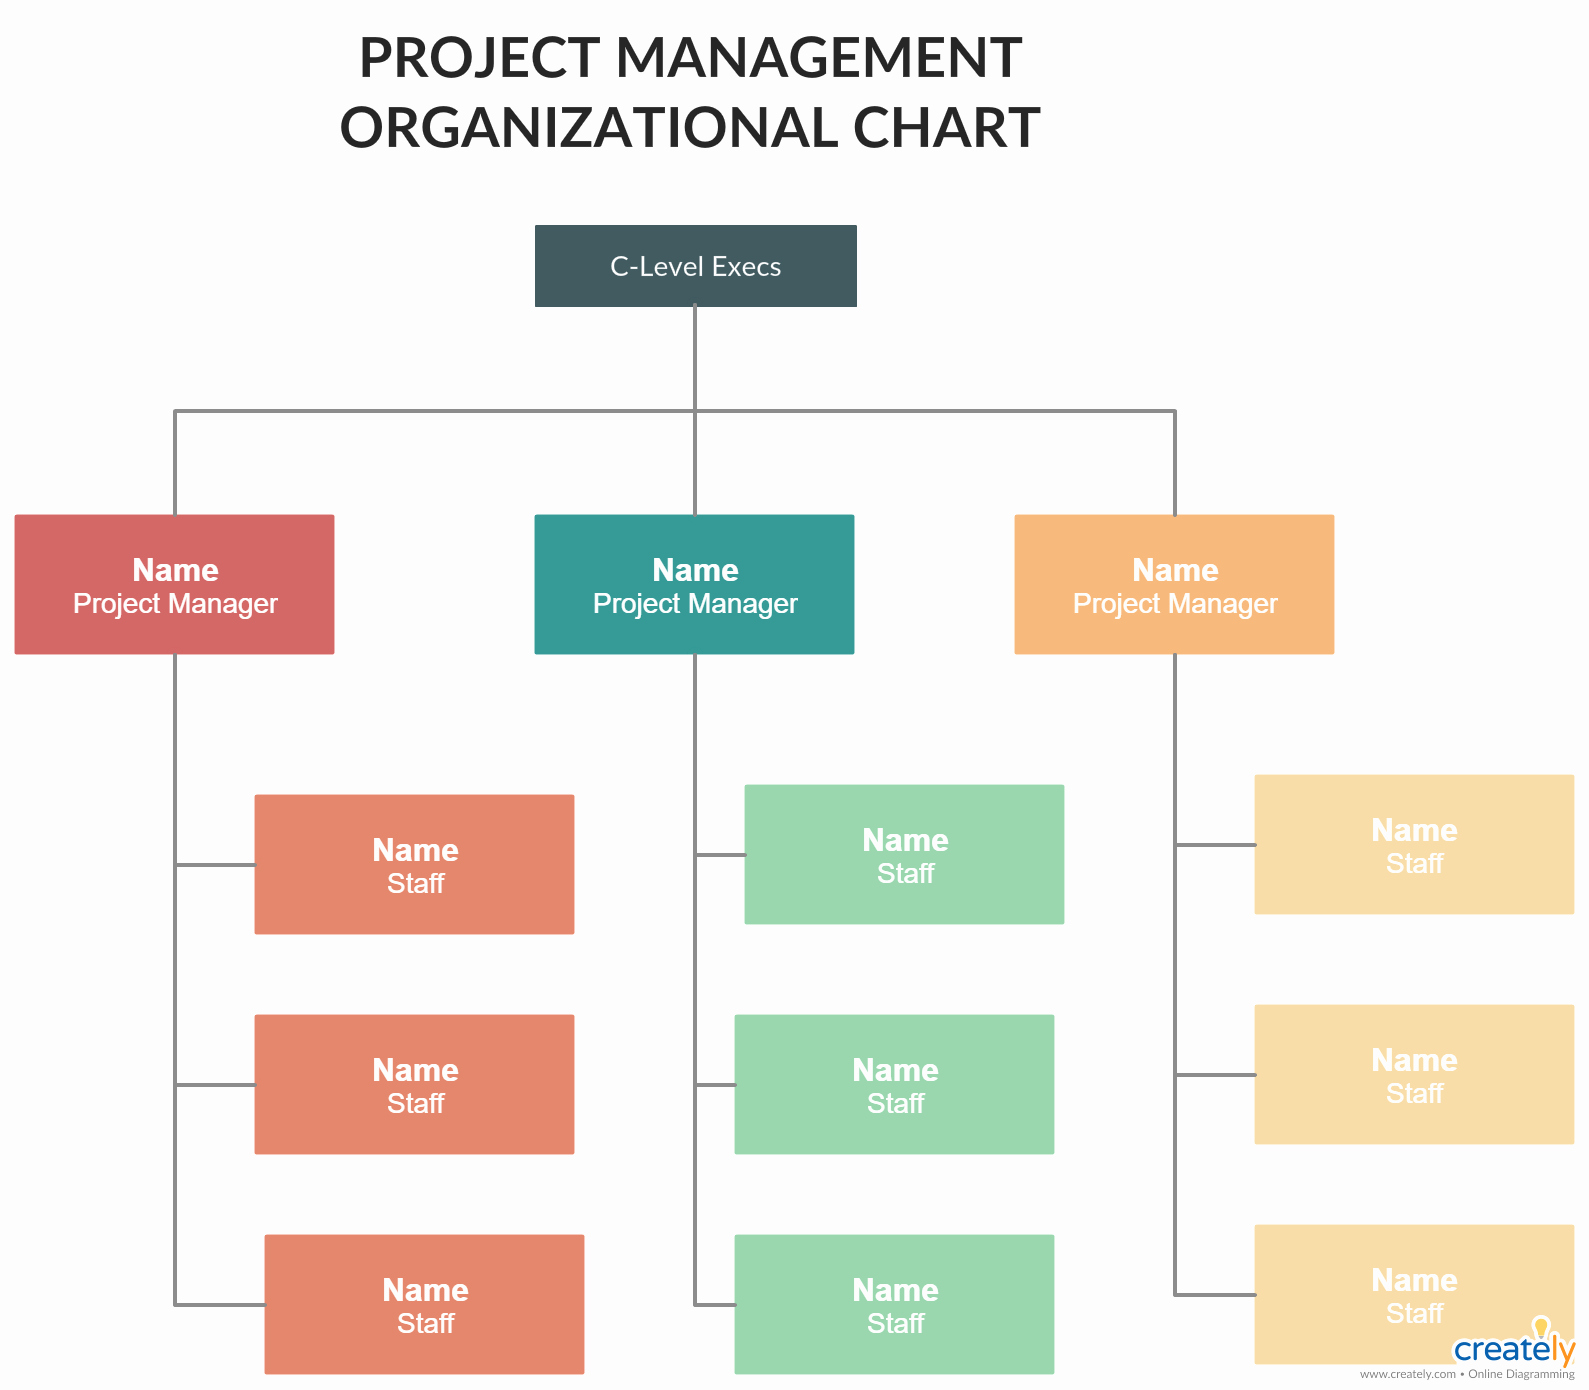 Project organization Chart Template Best Of Project Management organizational Structures You Can